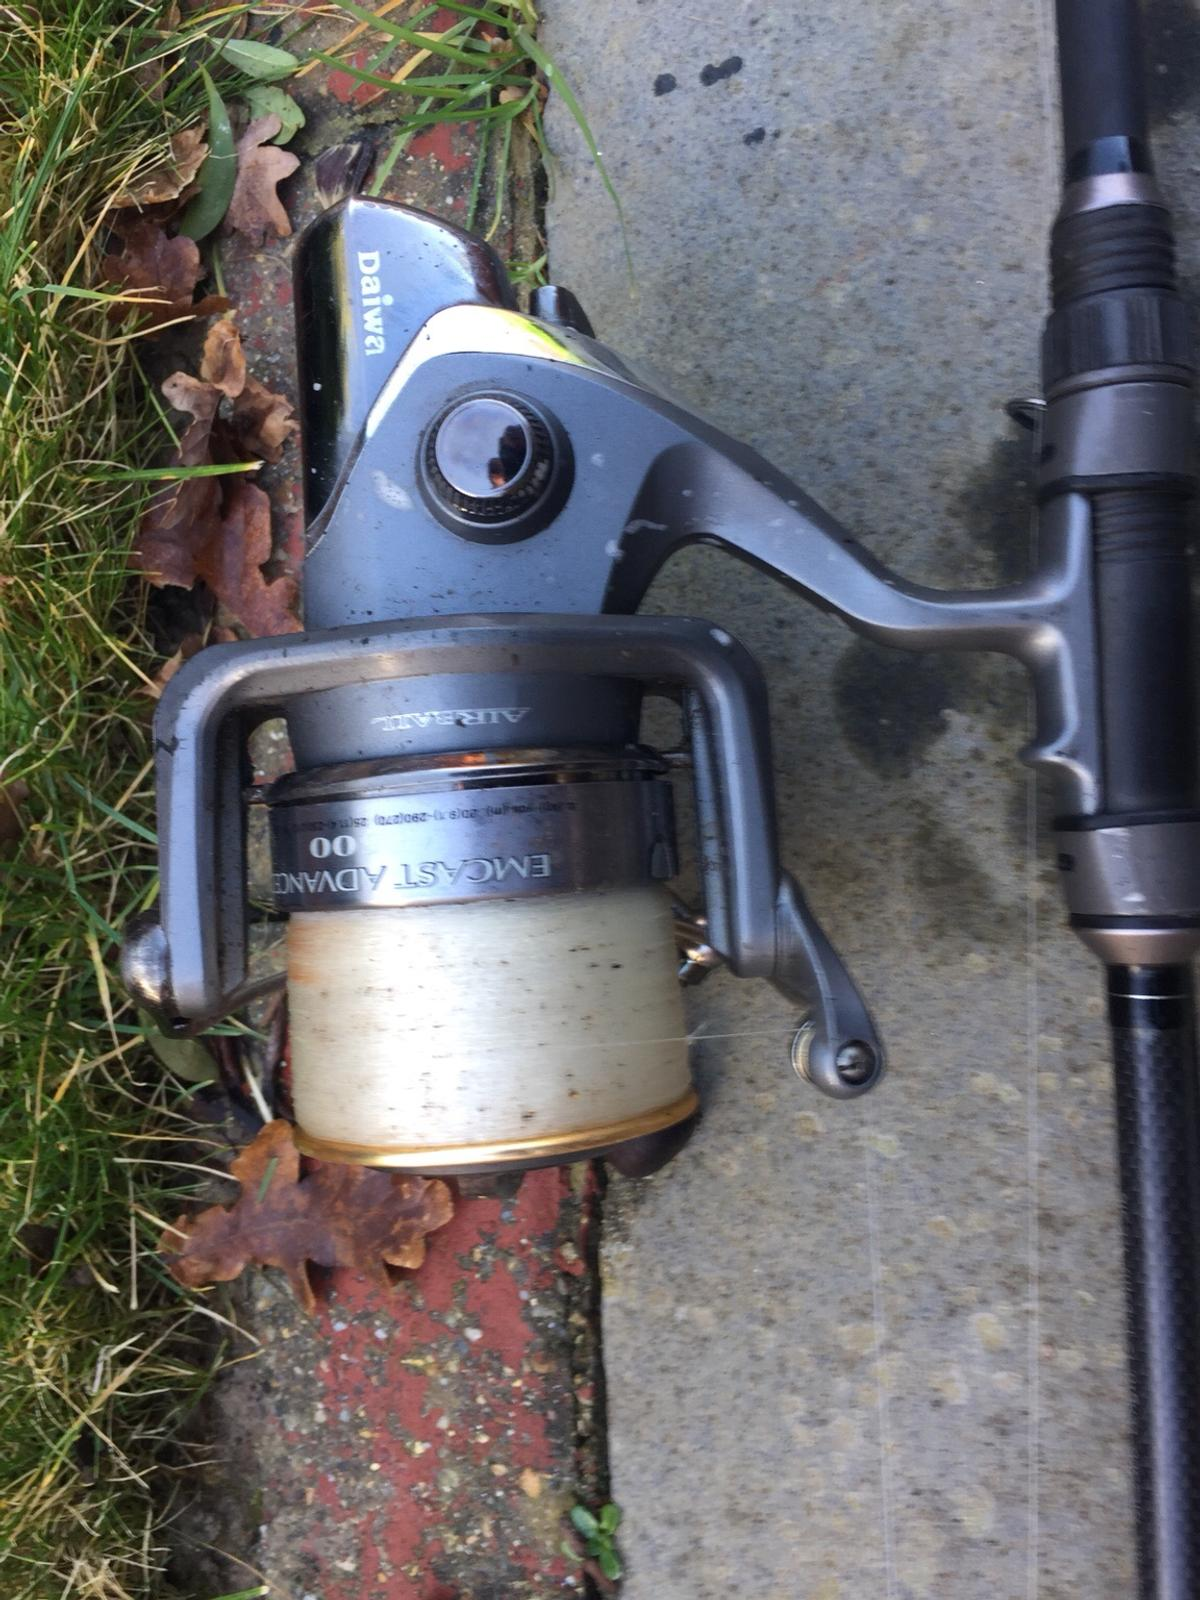 Daiwa emcast advance 5500 reels in Lingfield for £100 00 for